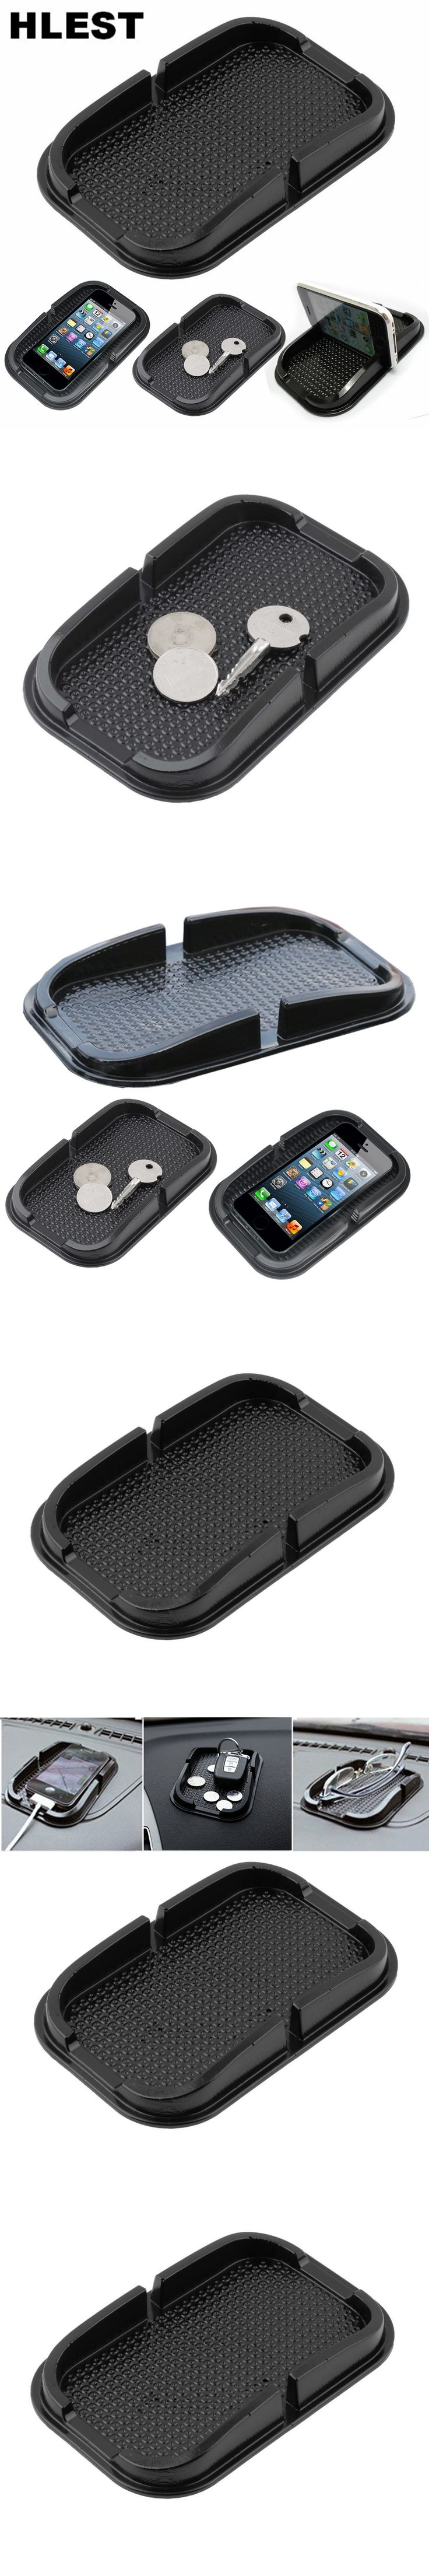 Universal Multifuction In Car Dashboard Non Slip Durable Grip Pad Smartphone GPS Holder Portable Black Silicone Mat